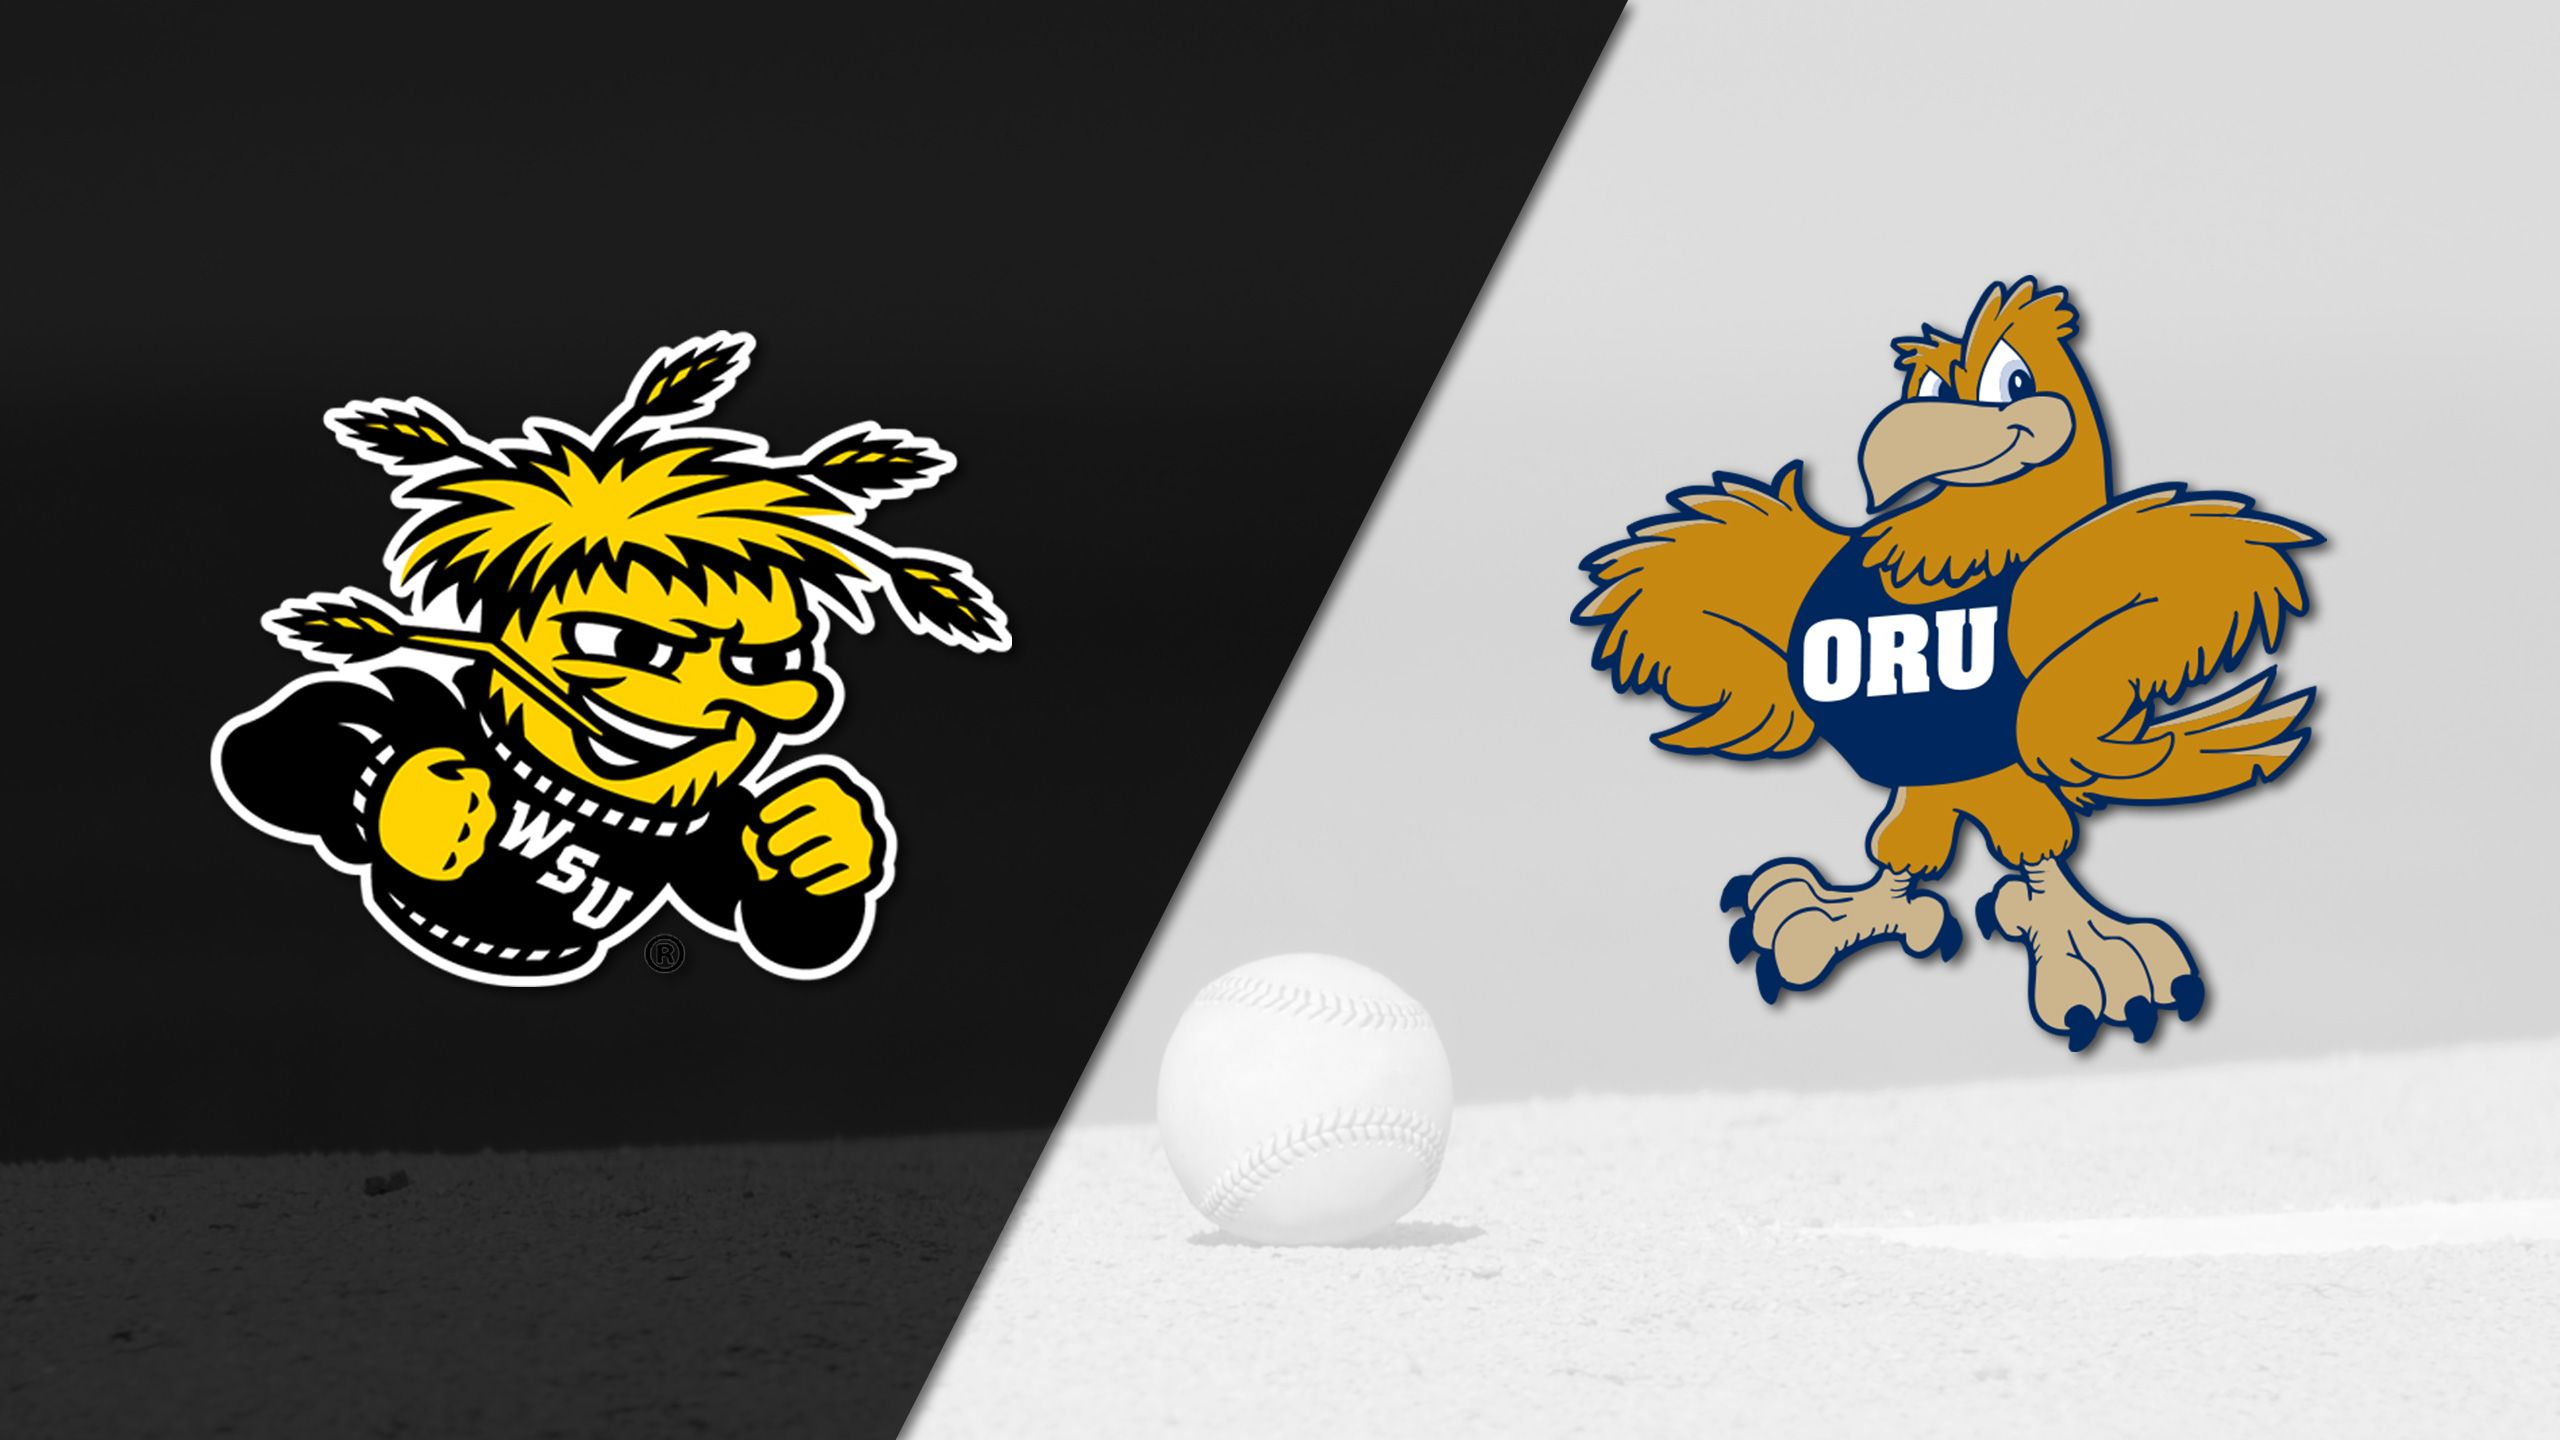 Wichita State vs. Oral Roberts (Baseball)